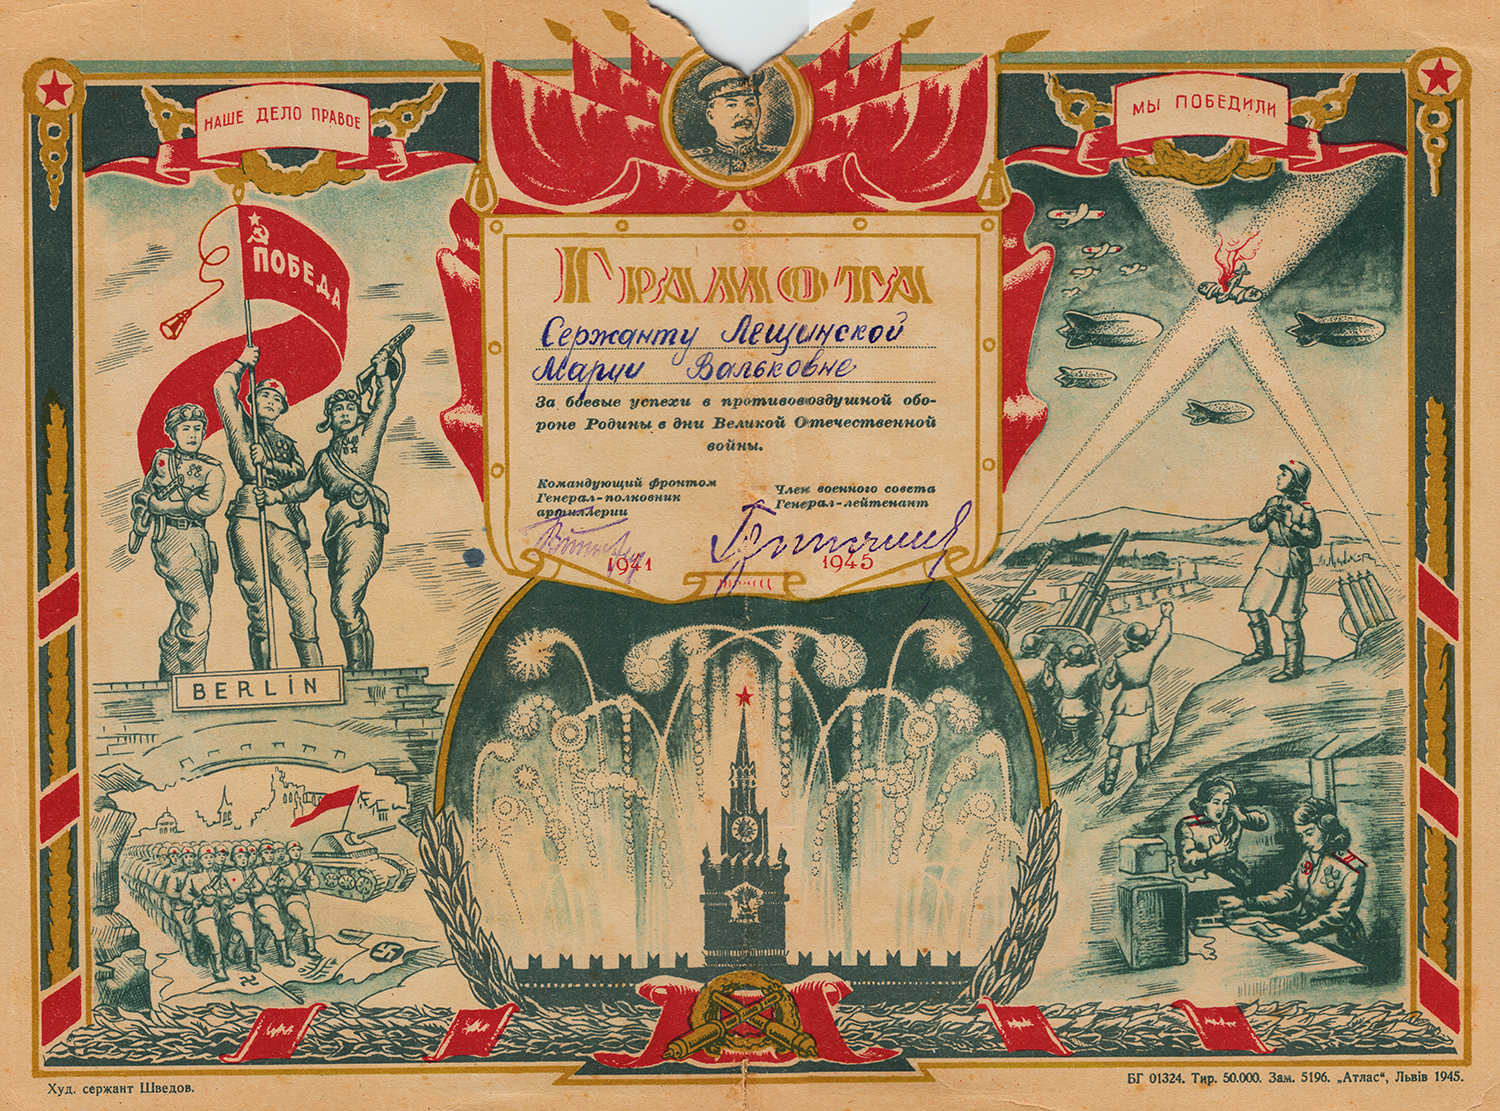 Award certificate for participation in the Great Patriotic War, granted to sergeant Maria Volkovna Leshchinskaya.